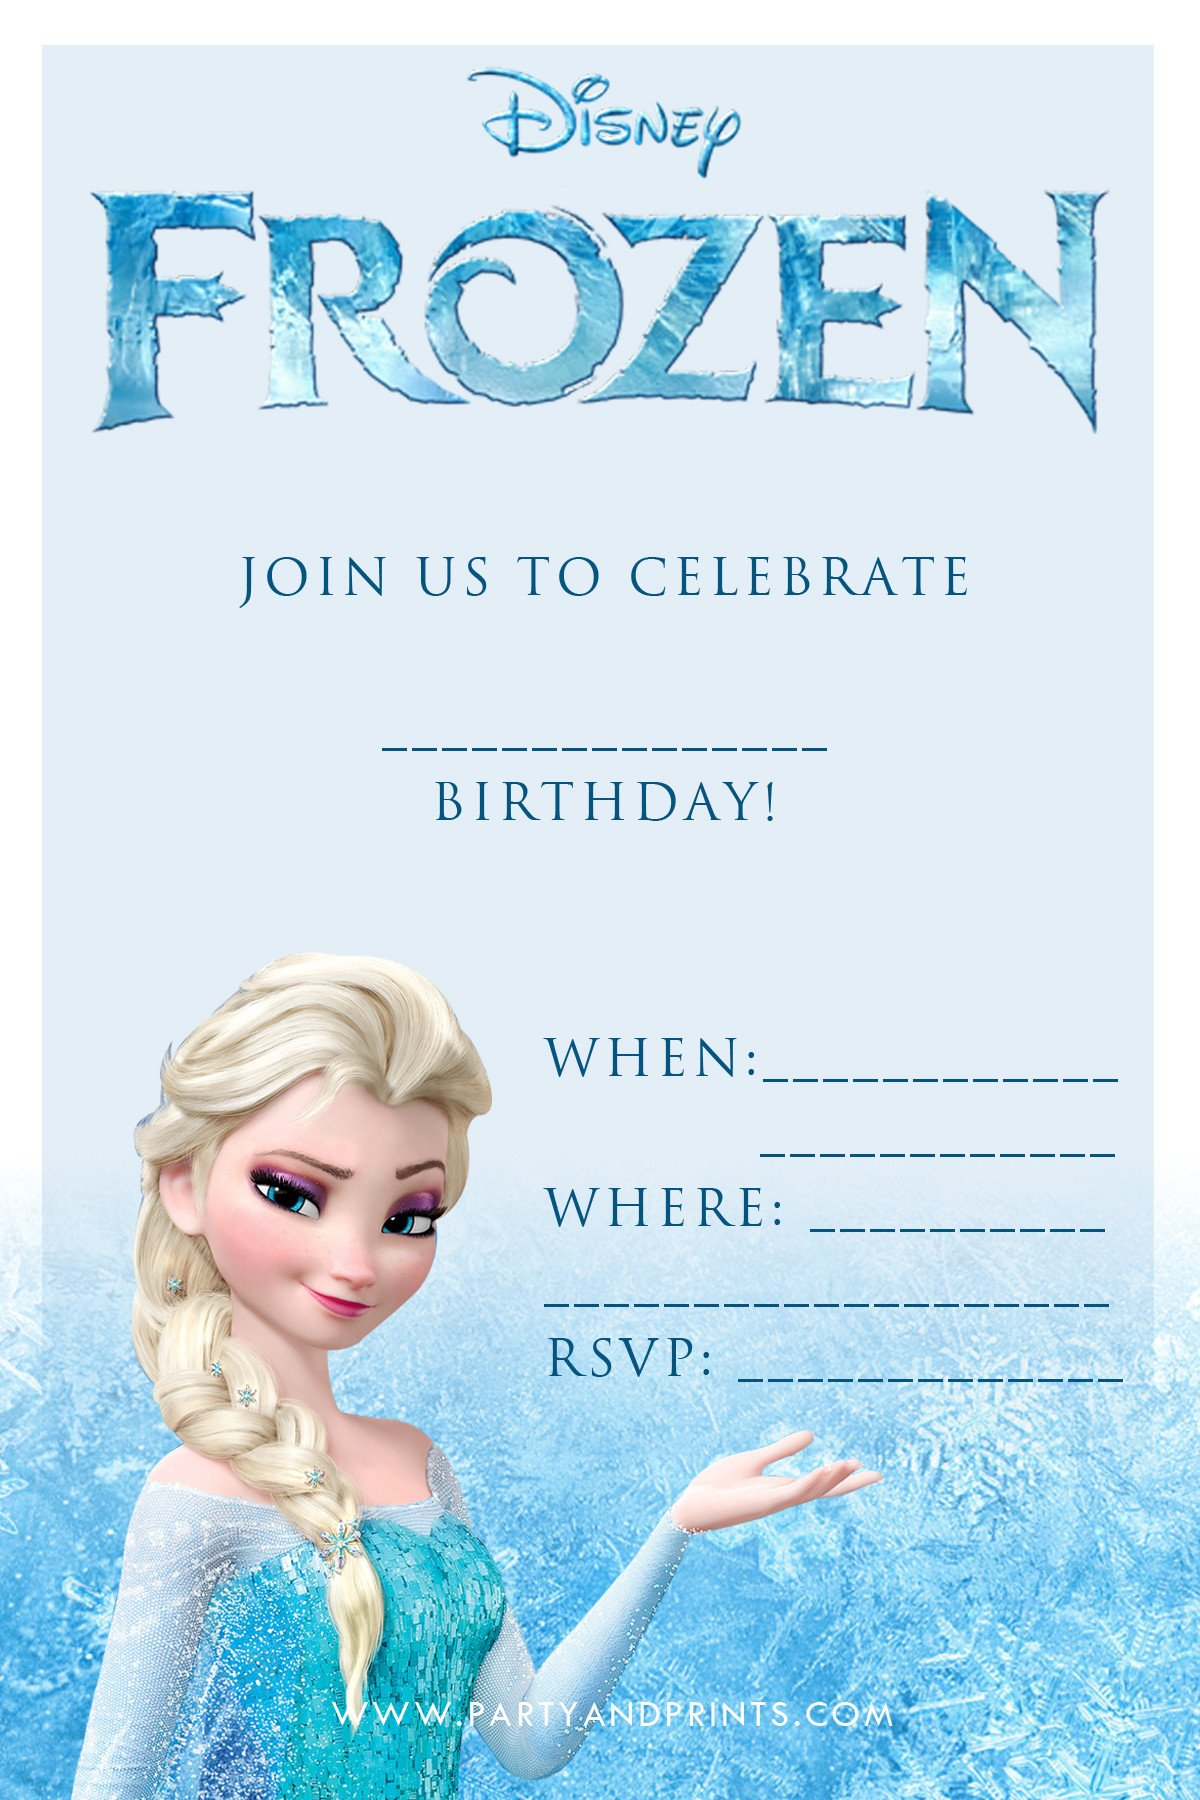 Frozen Bday Party Invitations 20 Frozen Birthday Party Ideas